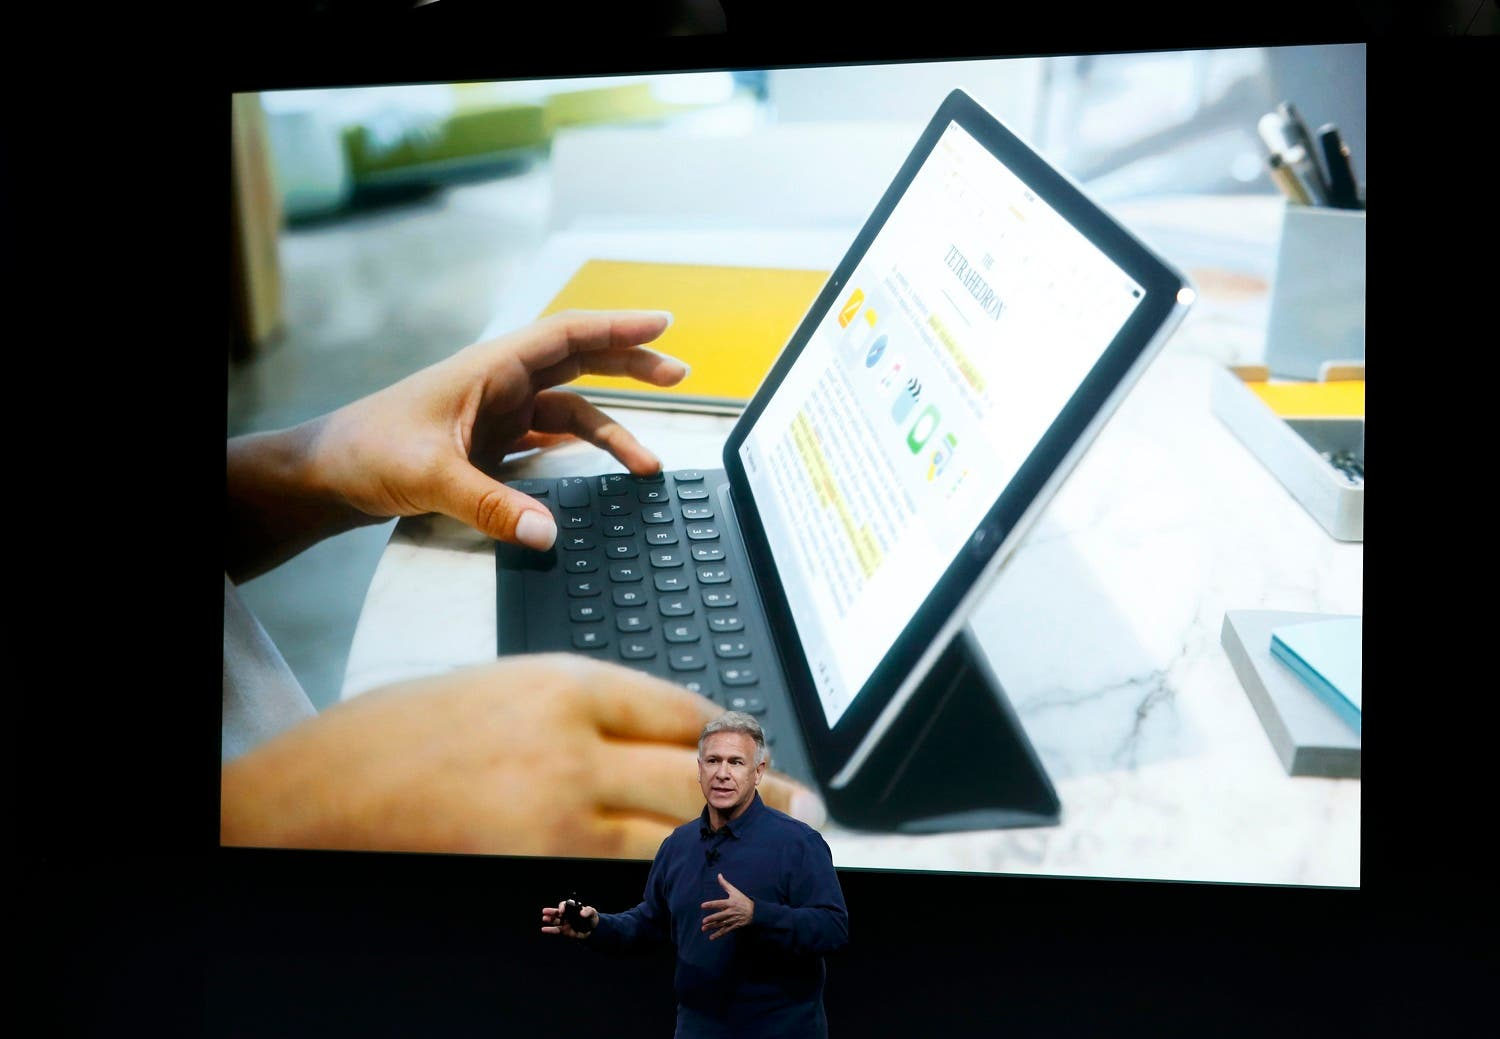 Phil Schiller, senior VP of worldwide marketing for Apple, introduces the iPad Pro with 9.7-inch display during an event at the Apple headquarters in Cupertino, California. (Reuters)